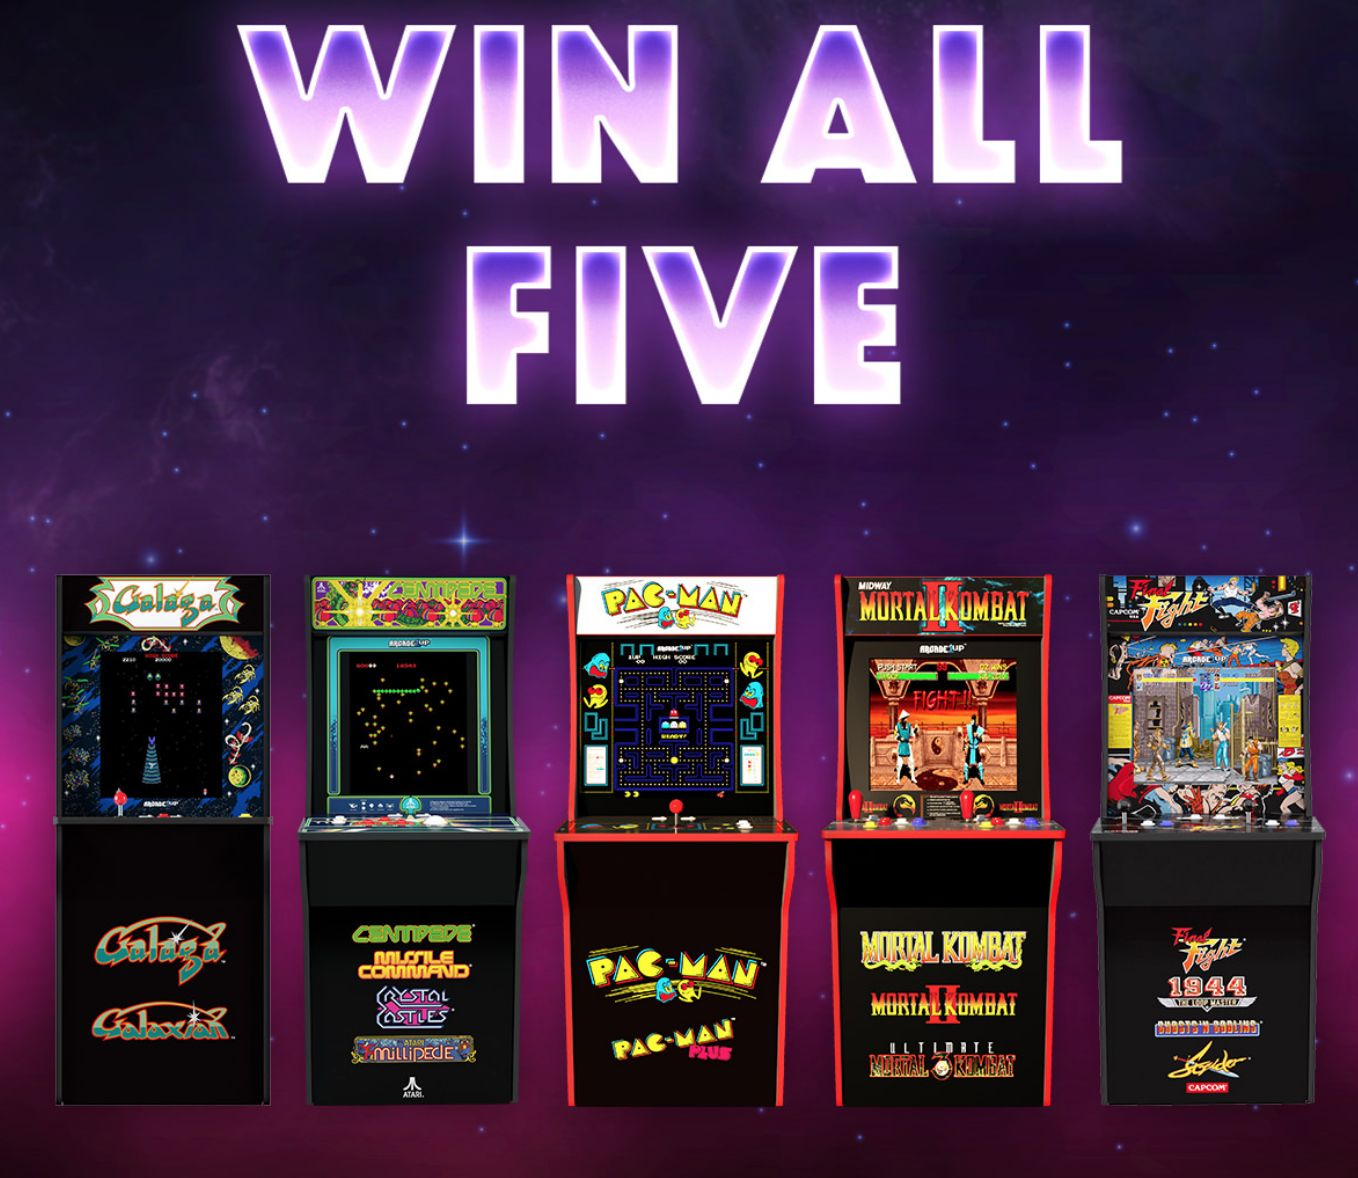 Arcade1Up Will Celebrate National Video Day With A Giveaway